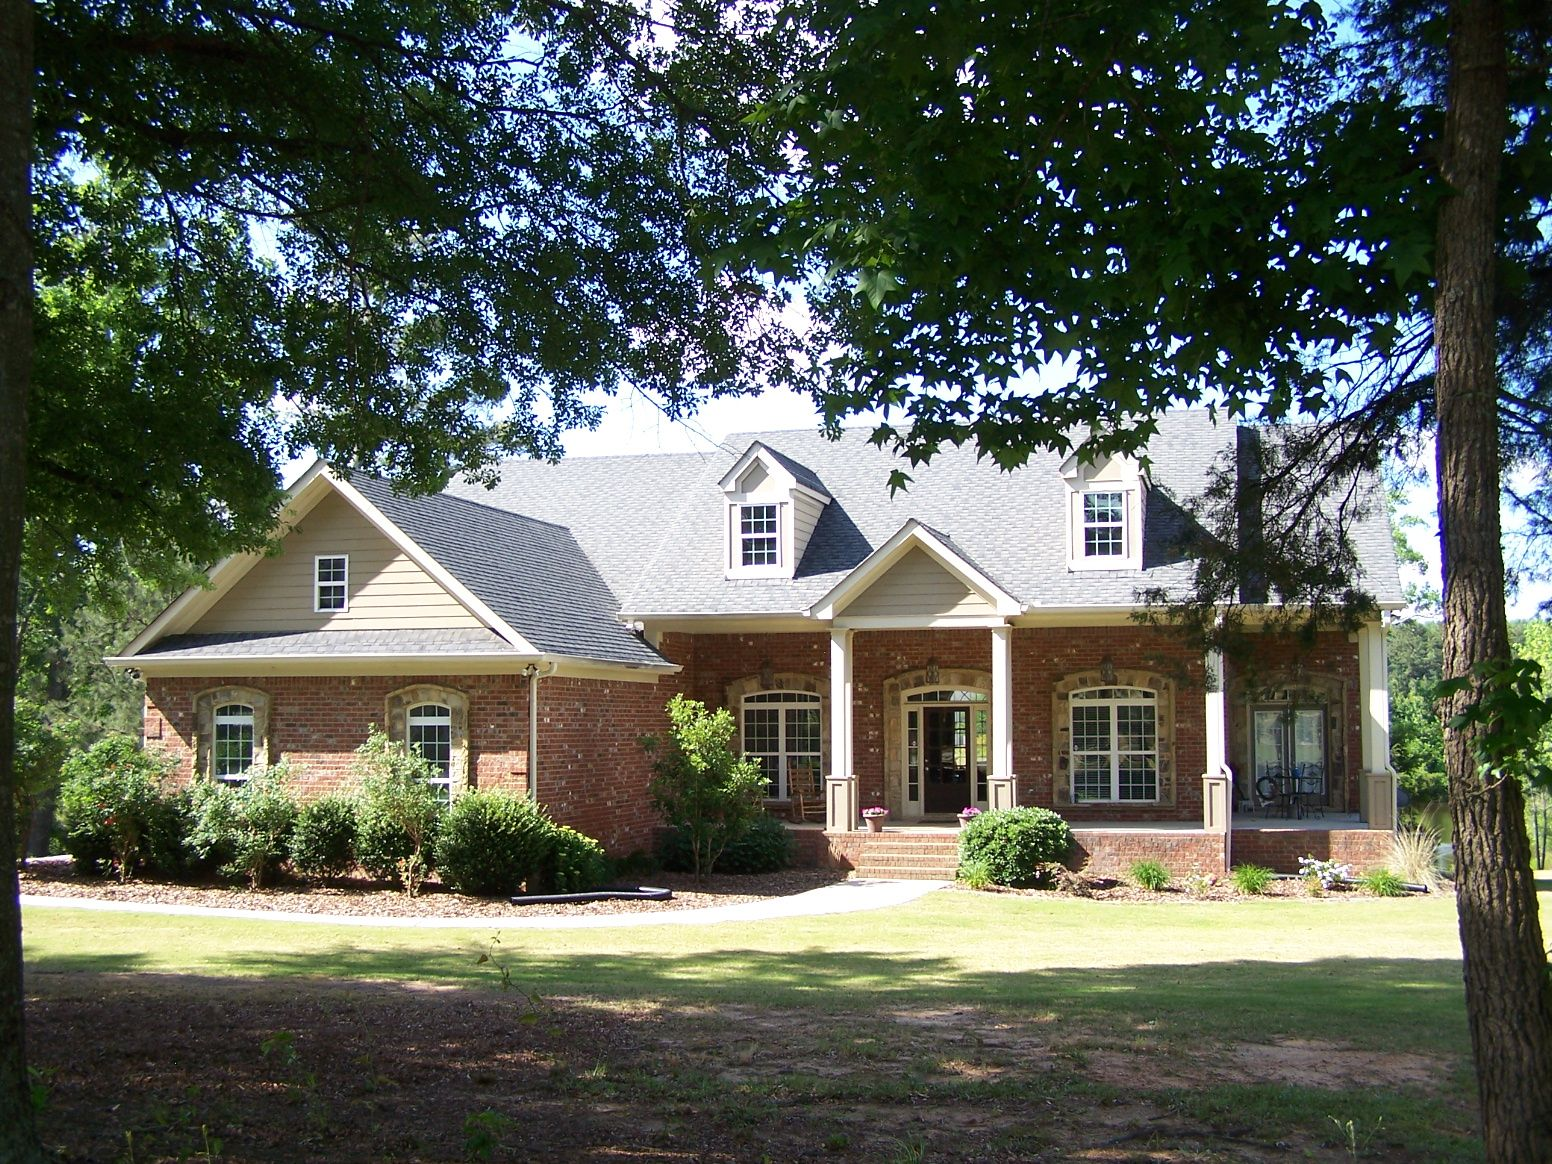 Open House Sunday July 10 2016 From 2 00 Pm To 5 00 Pm Refreshments Will Be Served 725 Amber Lakes Ct Social Circle Ga 30025 House Styles Open House House